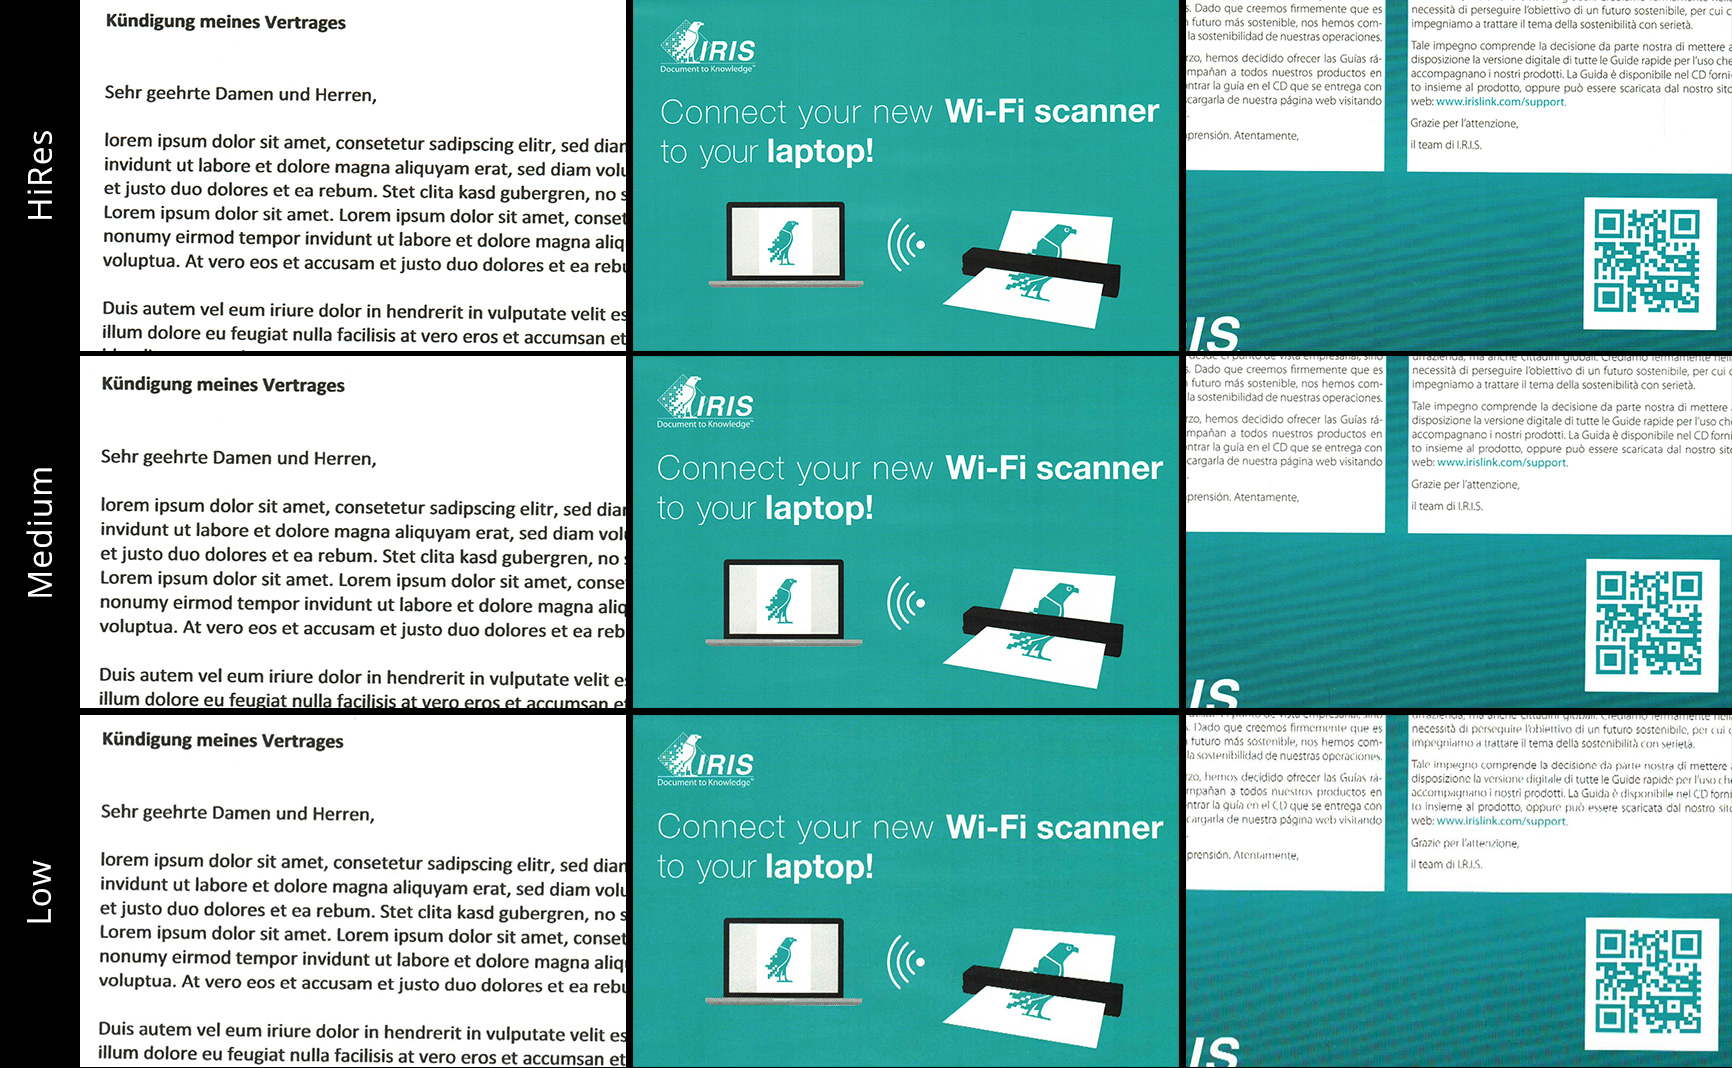 iriscan-anywhere-3-wifi-qualitaet